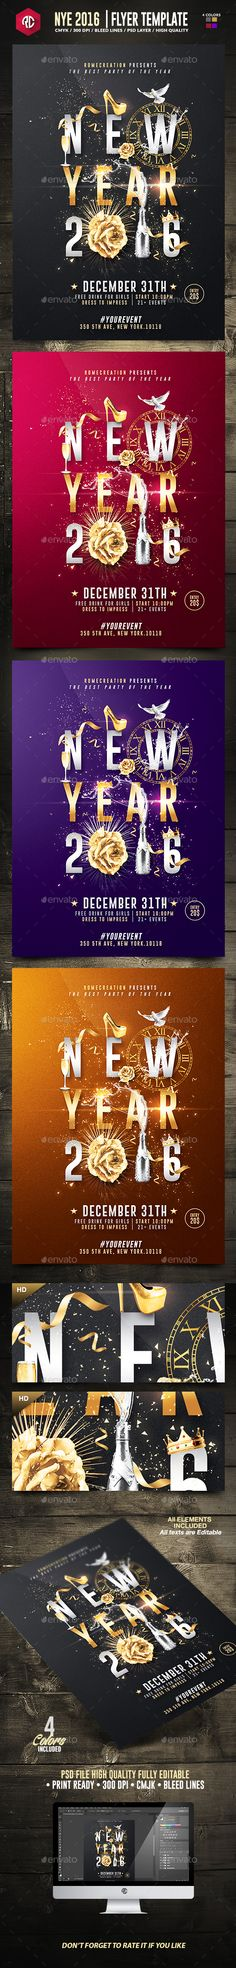 New Year 2016 | Psd Poster Template | Creative Flyer |Psd Available. #flyer #template #party  Thanks for The Watching !